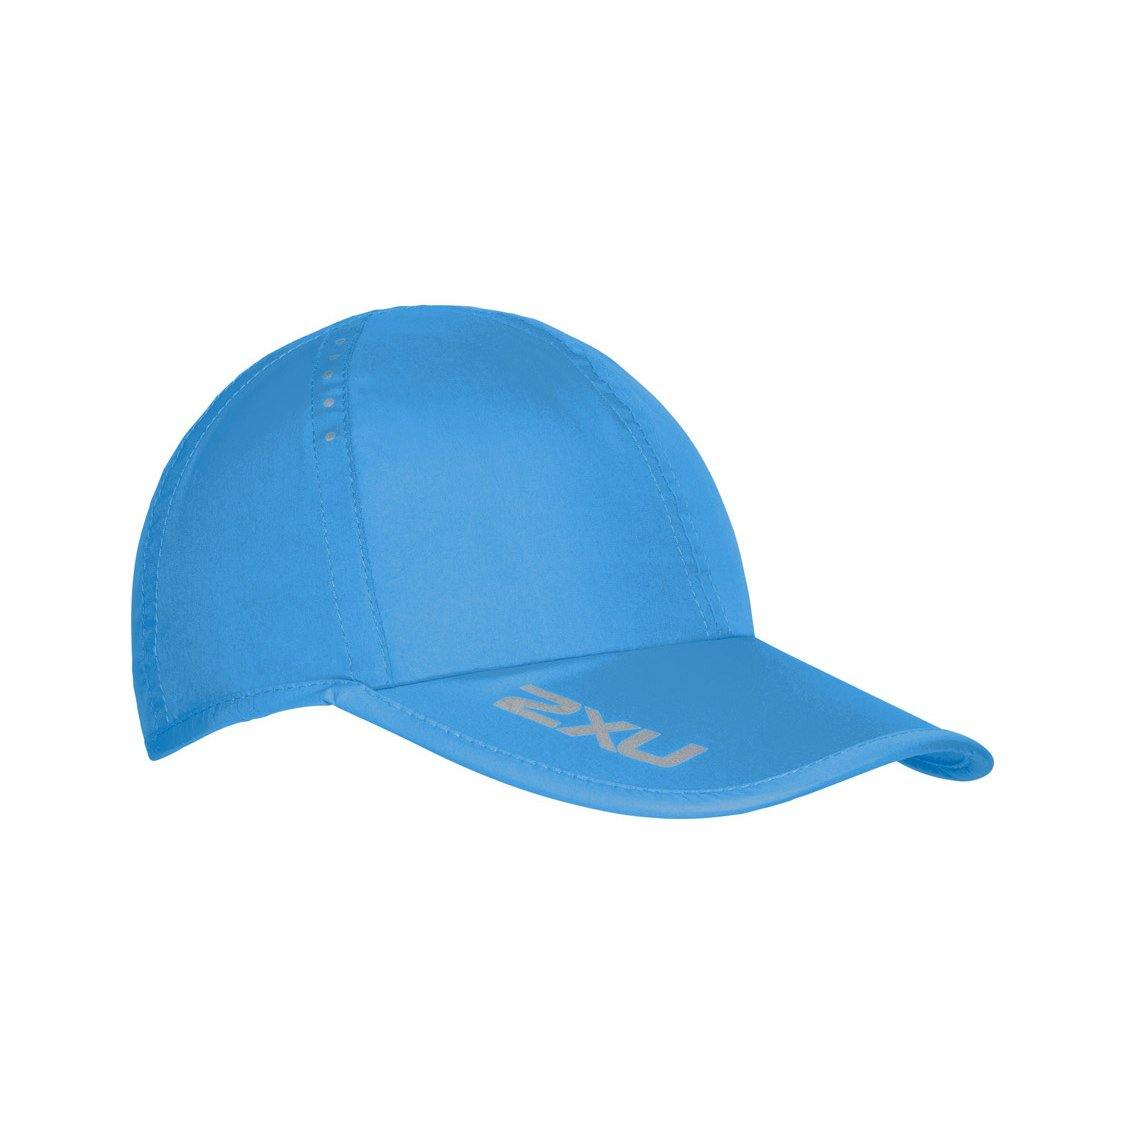 2XU Running Cap - Silver Lake